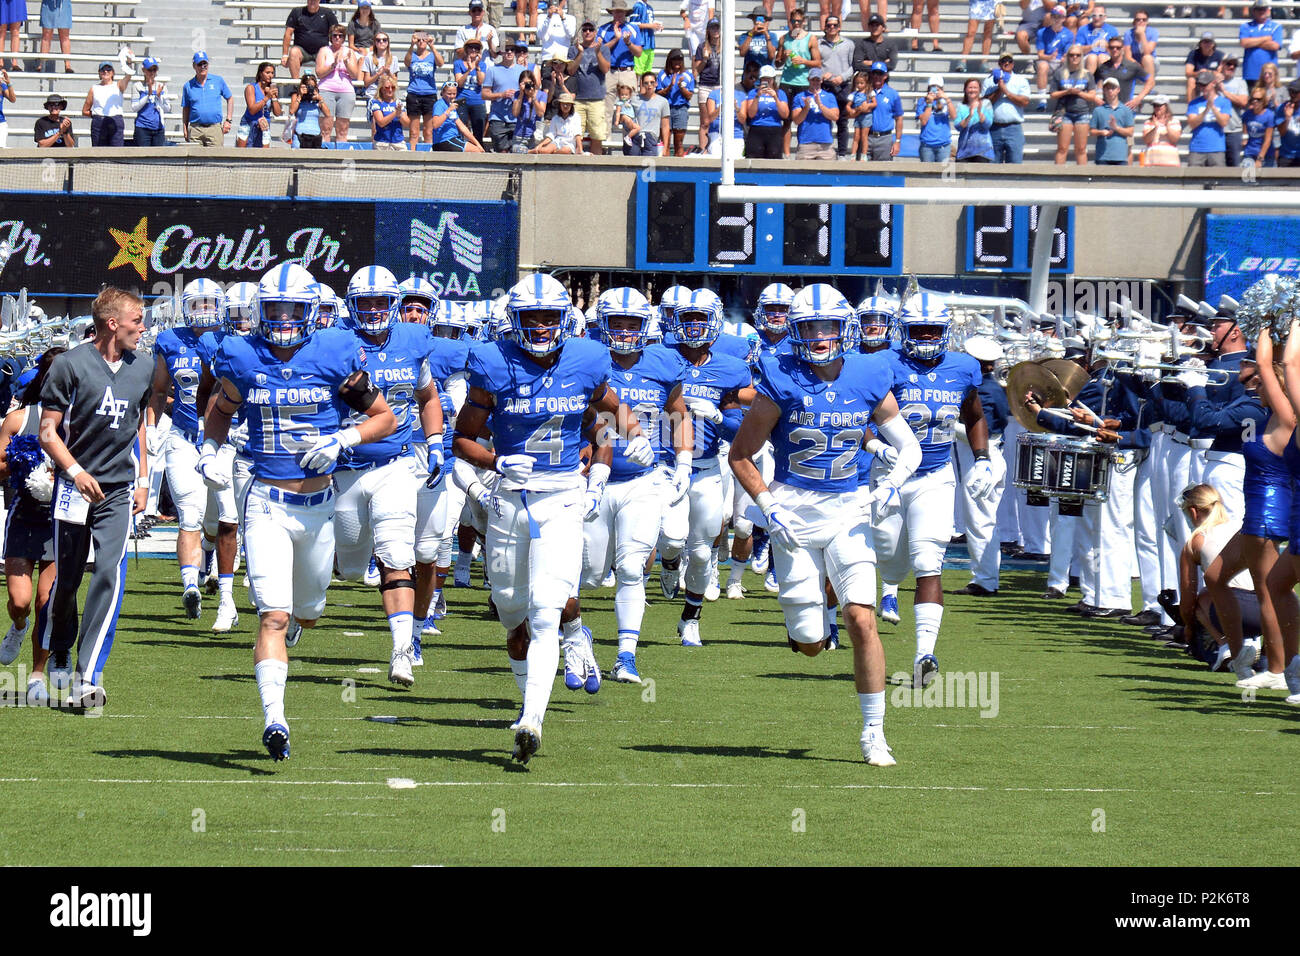 The Air Force football team enters Falcon Stadium during pre-game ceremonies before the Air Force vs. Virginia Military Institute football game at the U.S. Air Force Academy, Colo., Sept. 2, 2017. The Falcons defeated the Keydets 62-0, moving to 11-0 in season openers under head coach Troy Calhoun.  (U.S. Air Force photo/ Jason Gutierrez) (released) - Stock Image